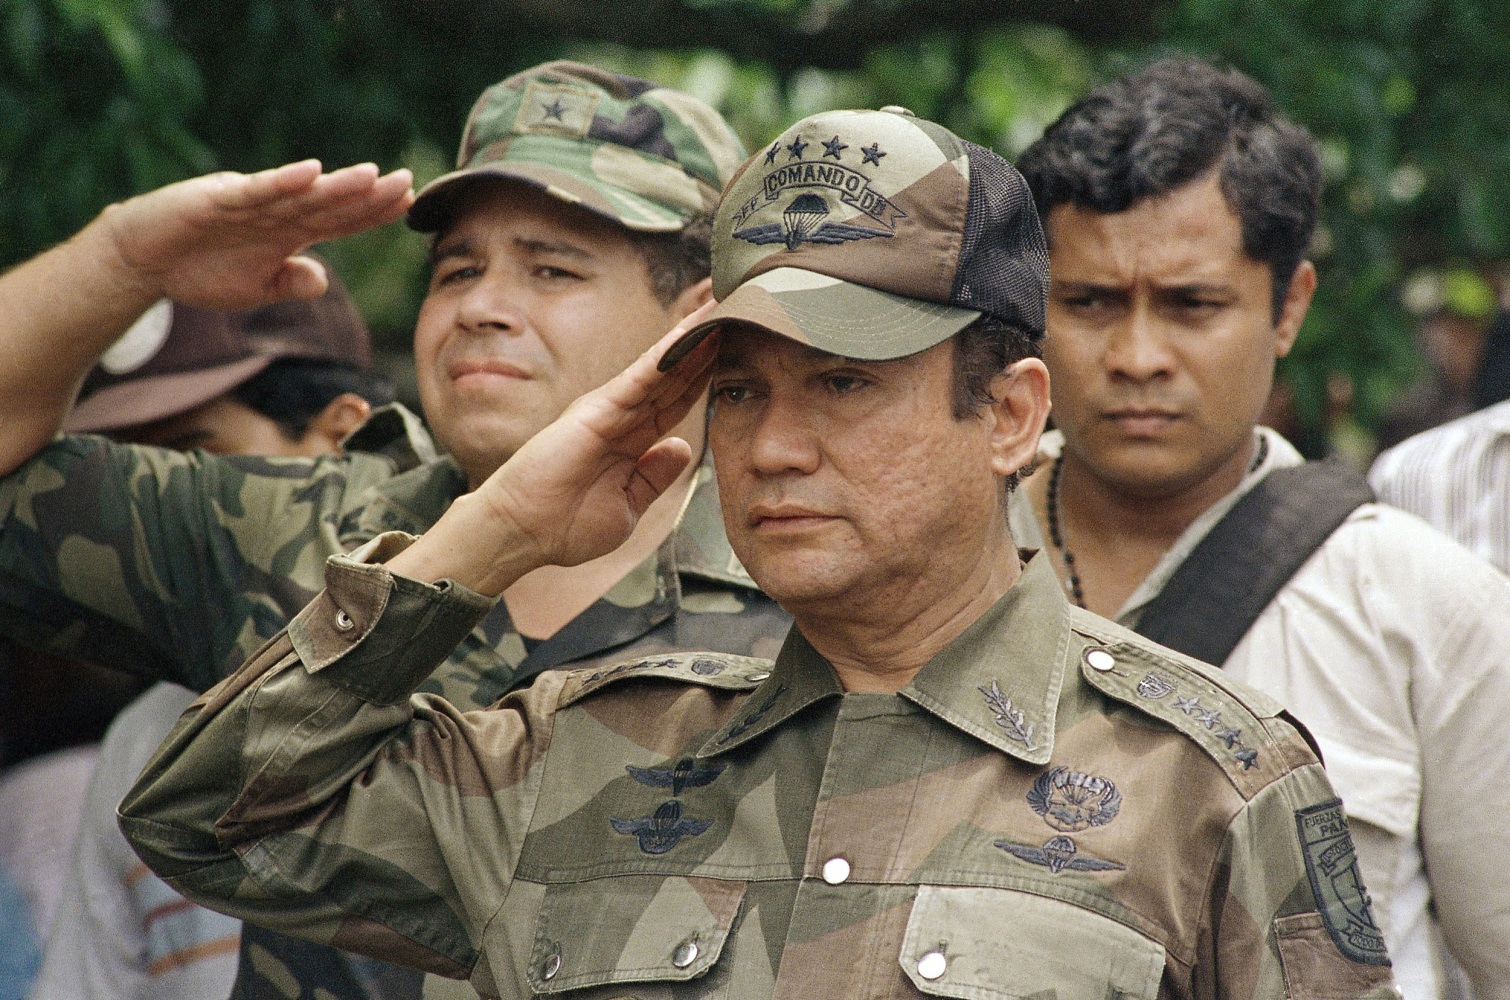 Manuel Noriega Ousted Panamanian Dictator Is Dead At 83